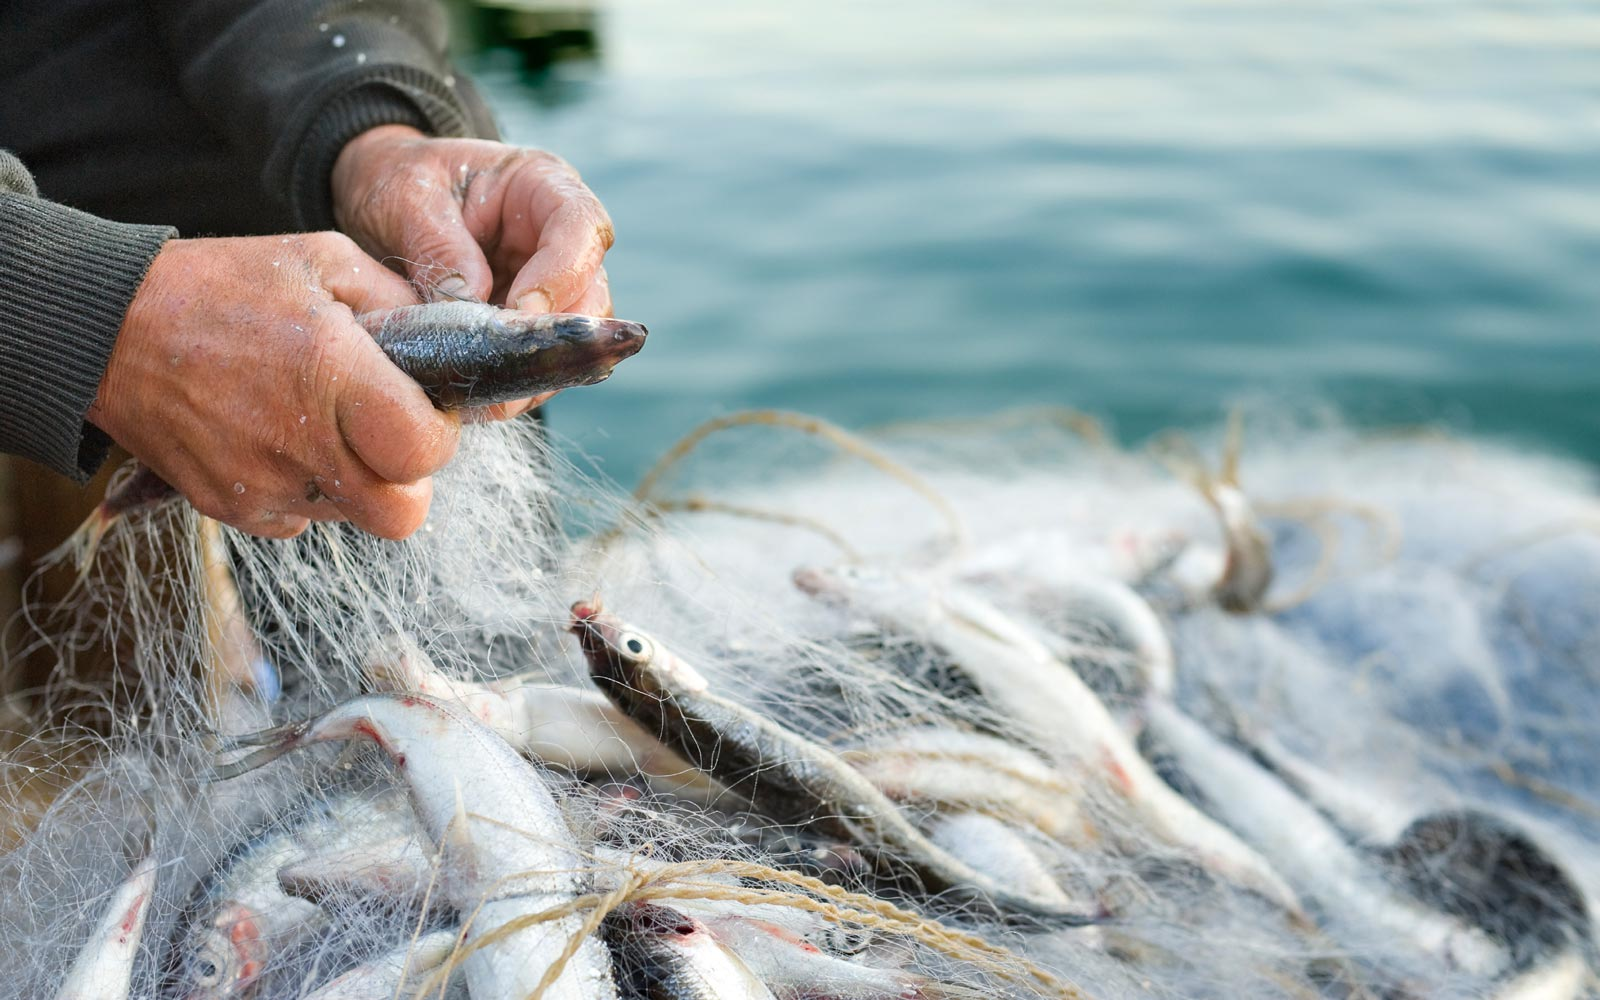 Close-up showing the hands of a person inspecting a netted ocean fish catch